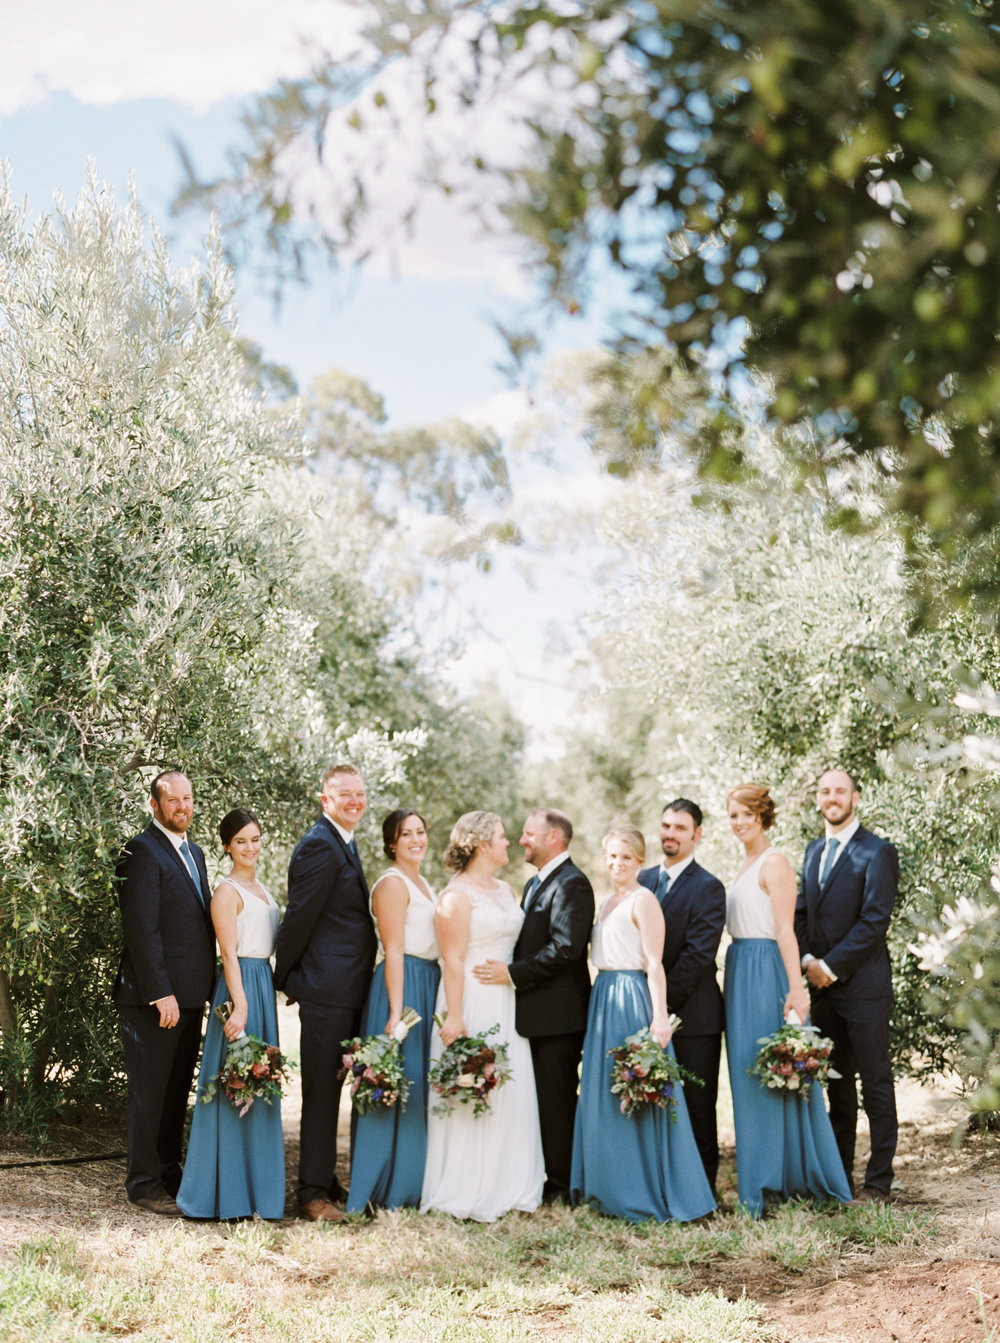 00028- Fine Art Film NSW Mudgee Wedding Photographer Sheri McMahon.jpg